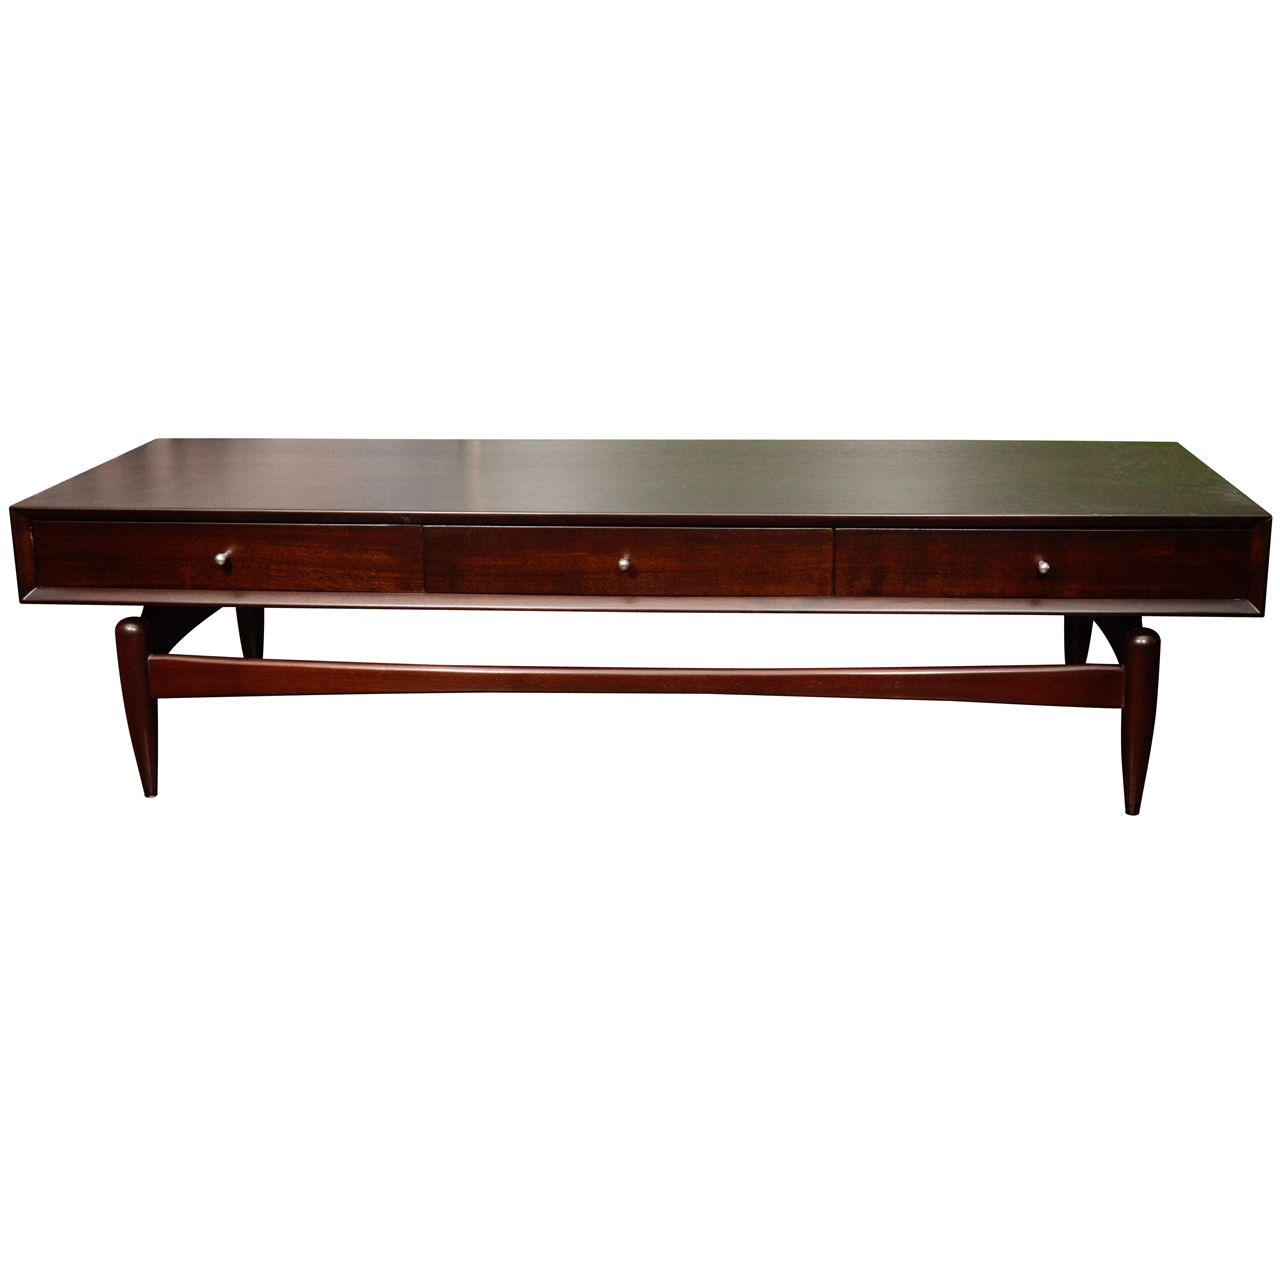 Dark walnut coffee table with drawers and chrome pulls